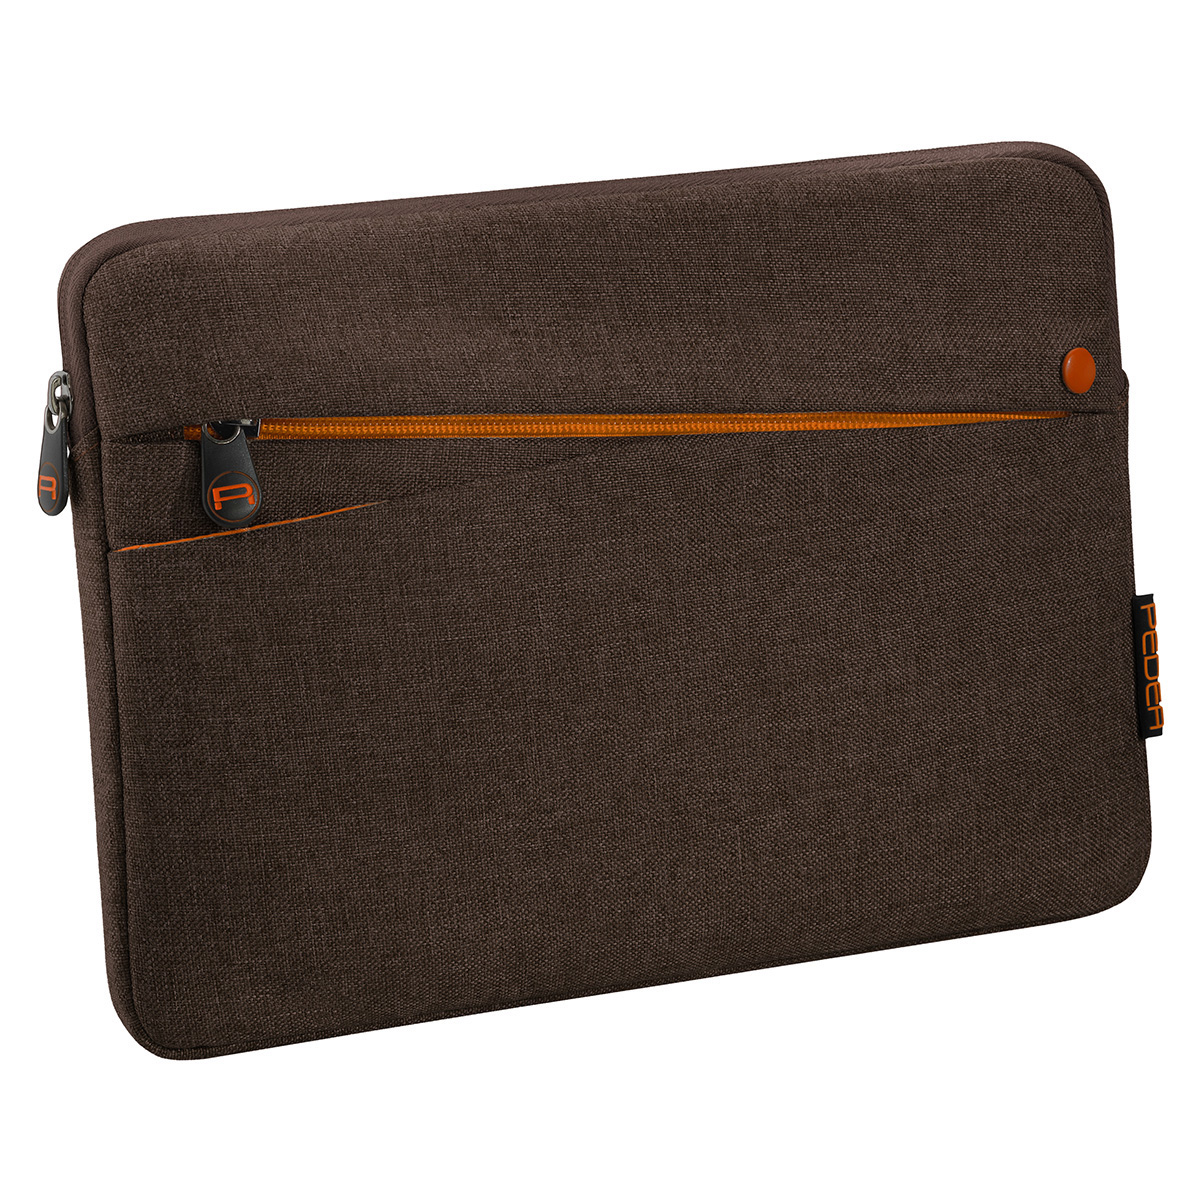 "PEDEA Tablet-Tasche 10,1"" (25,7cm) Fashion braun"